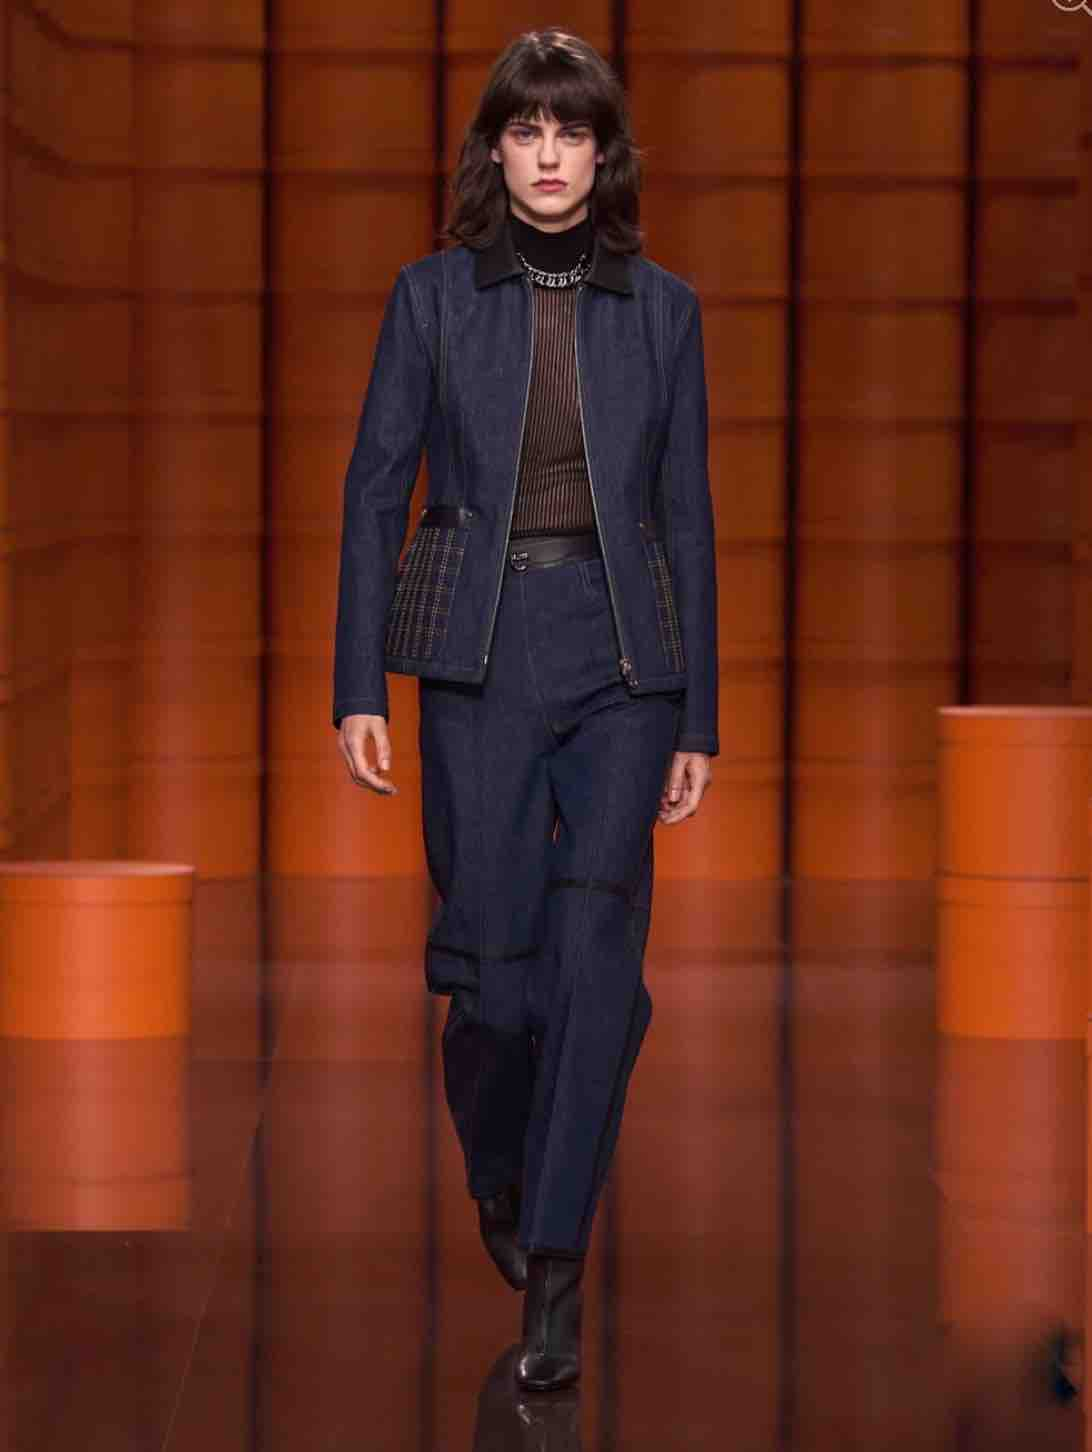 Hermes Raw Denim Is One Of The Style Trends To Shop For Fall 2021